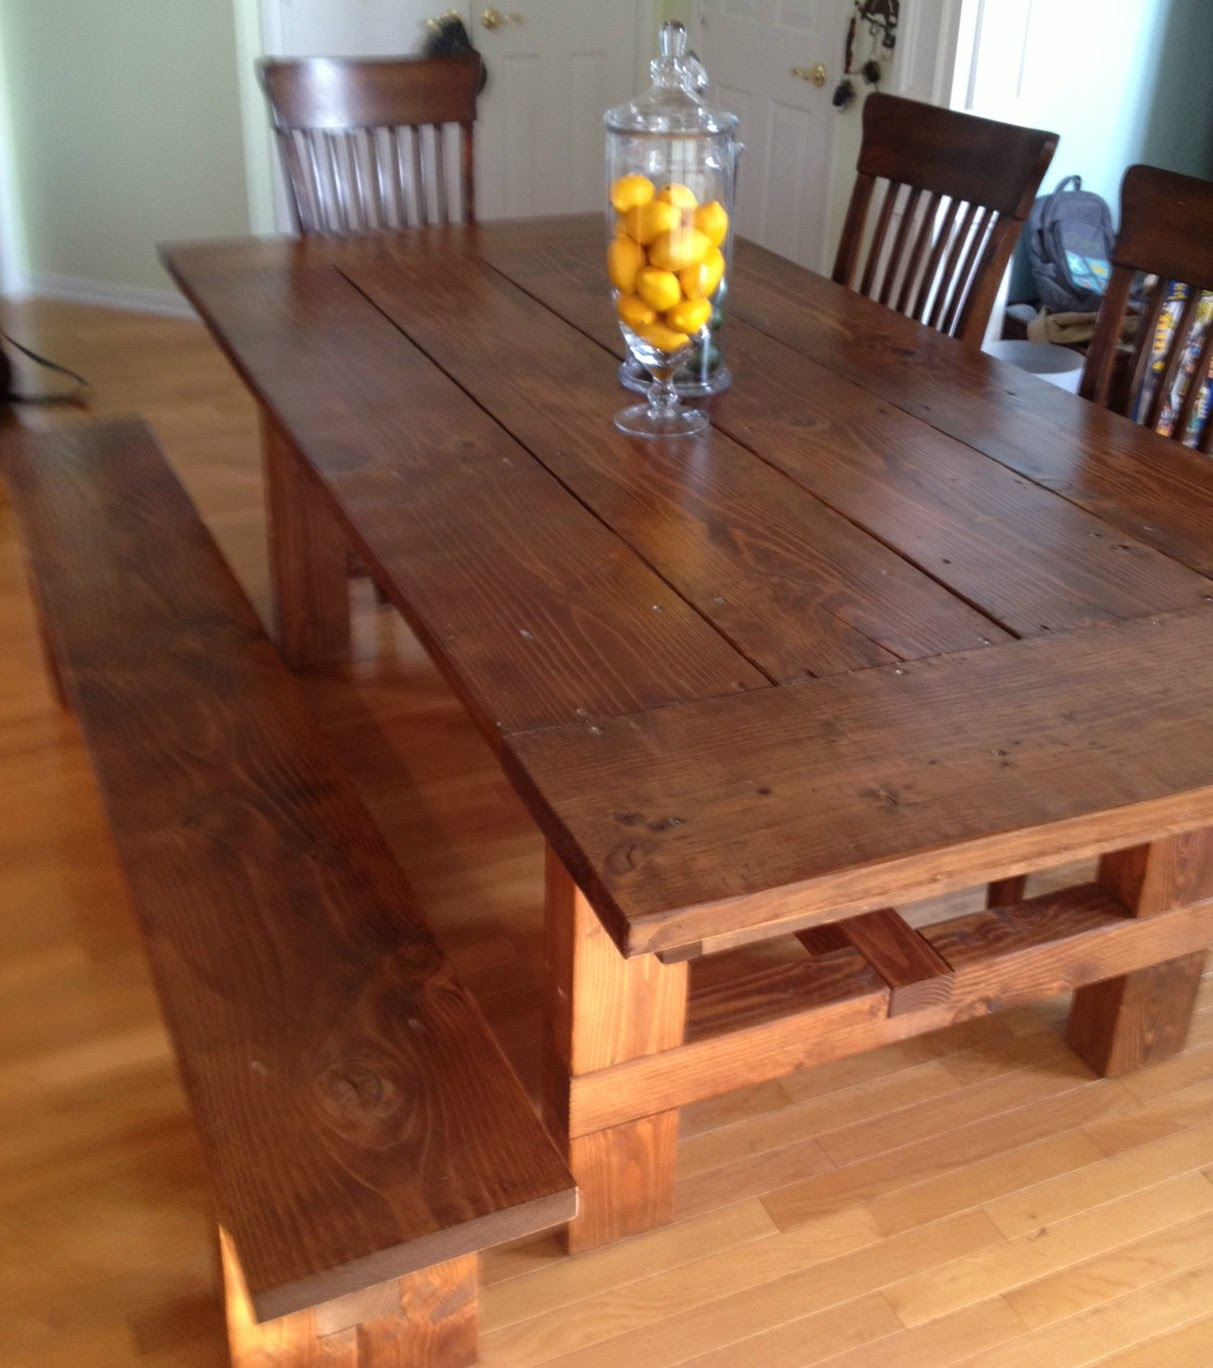 Built In Kitchen Table: Dad Built This: How To Build A Farmhouse Table